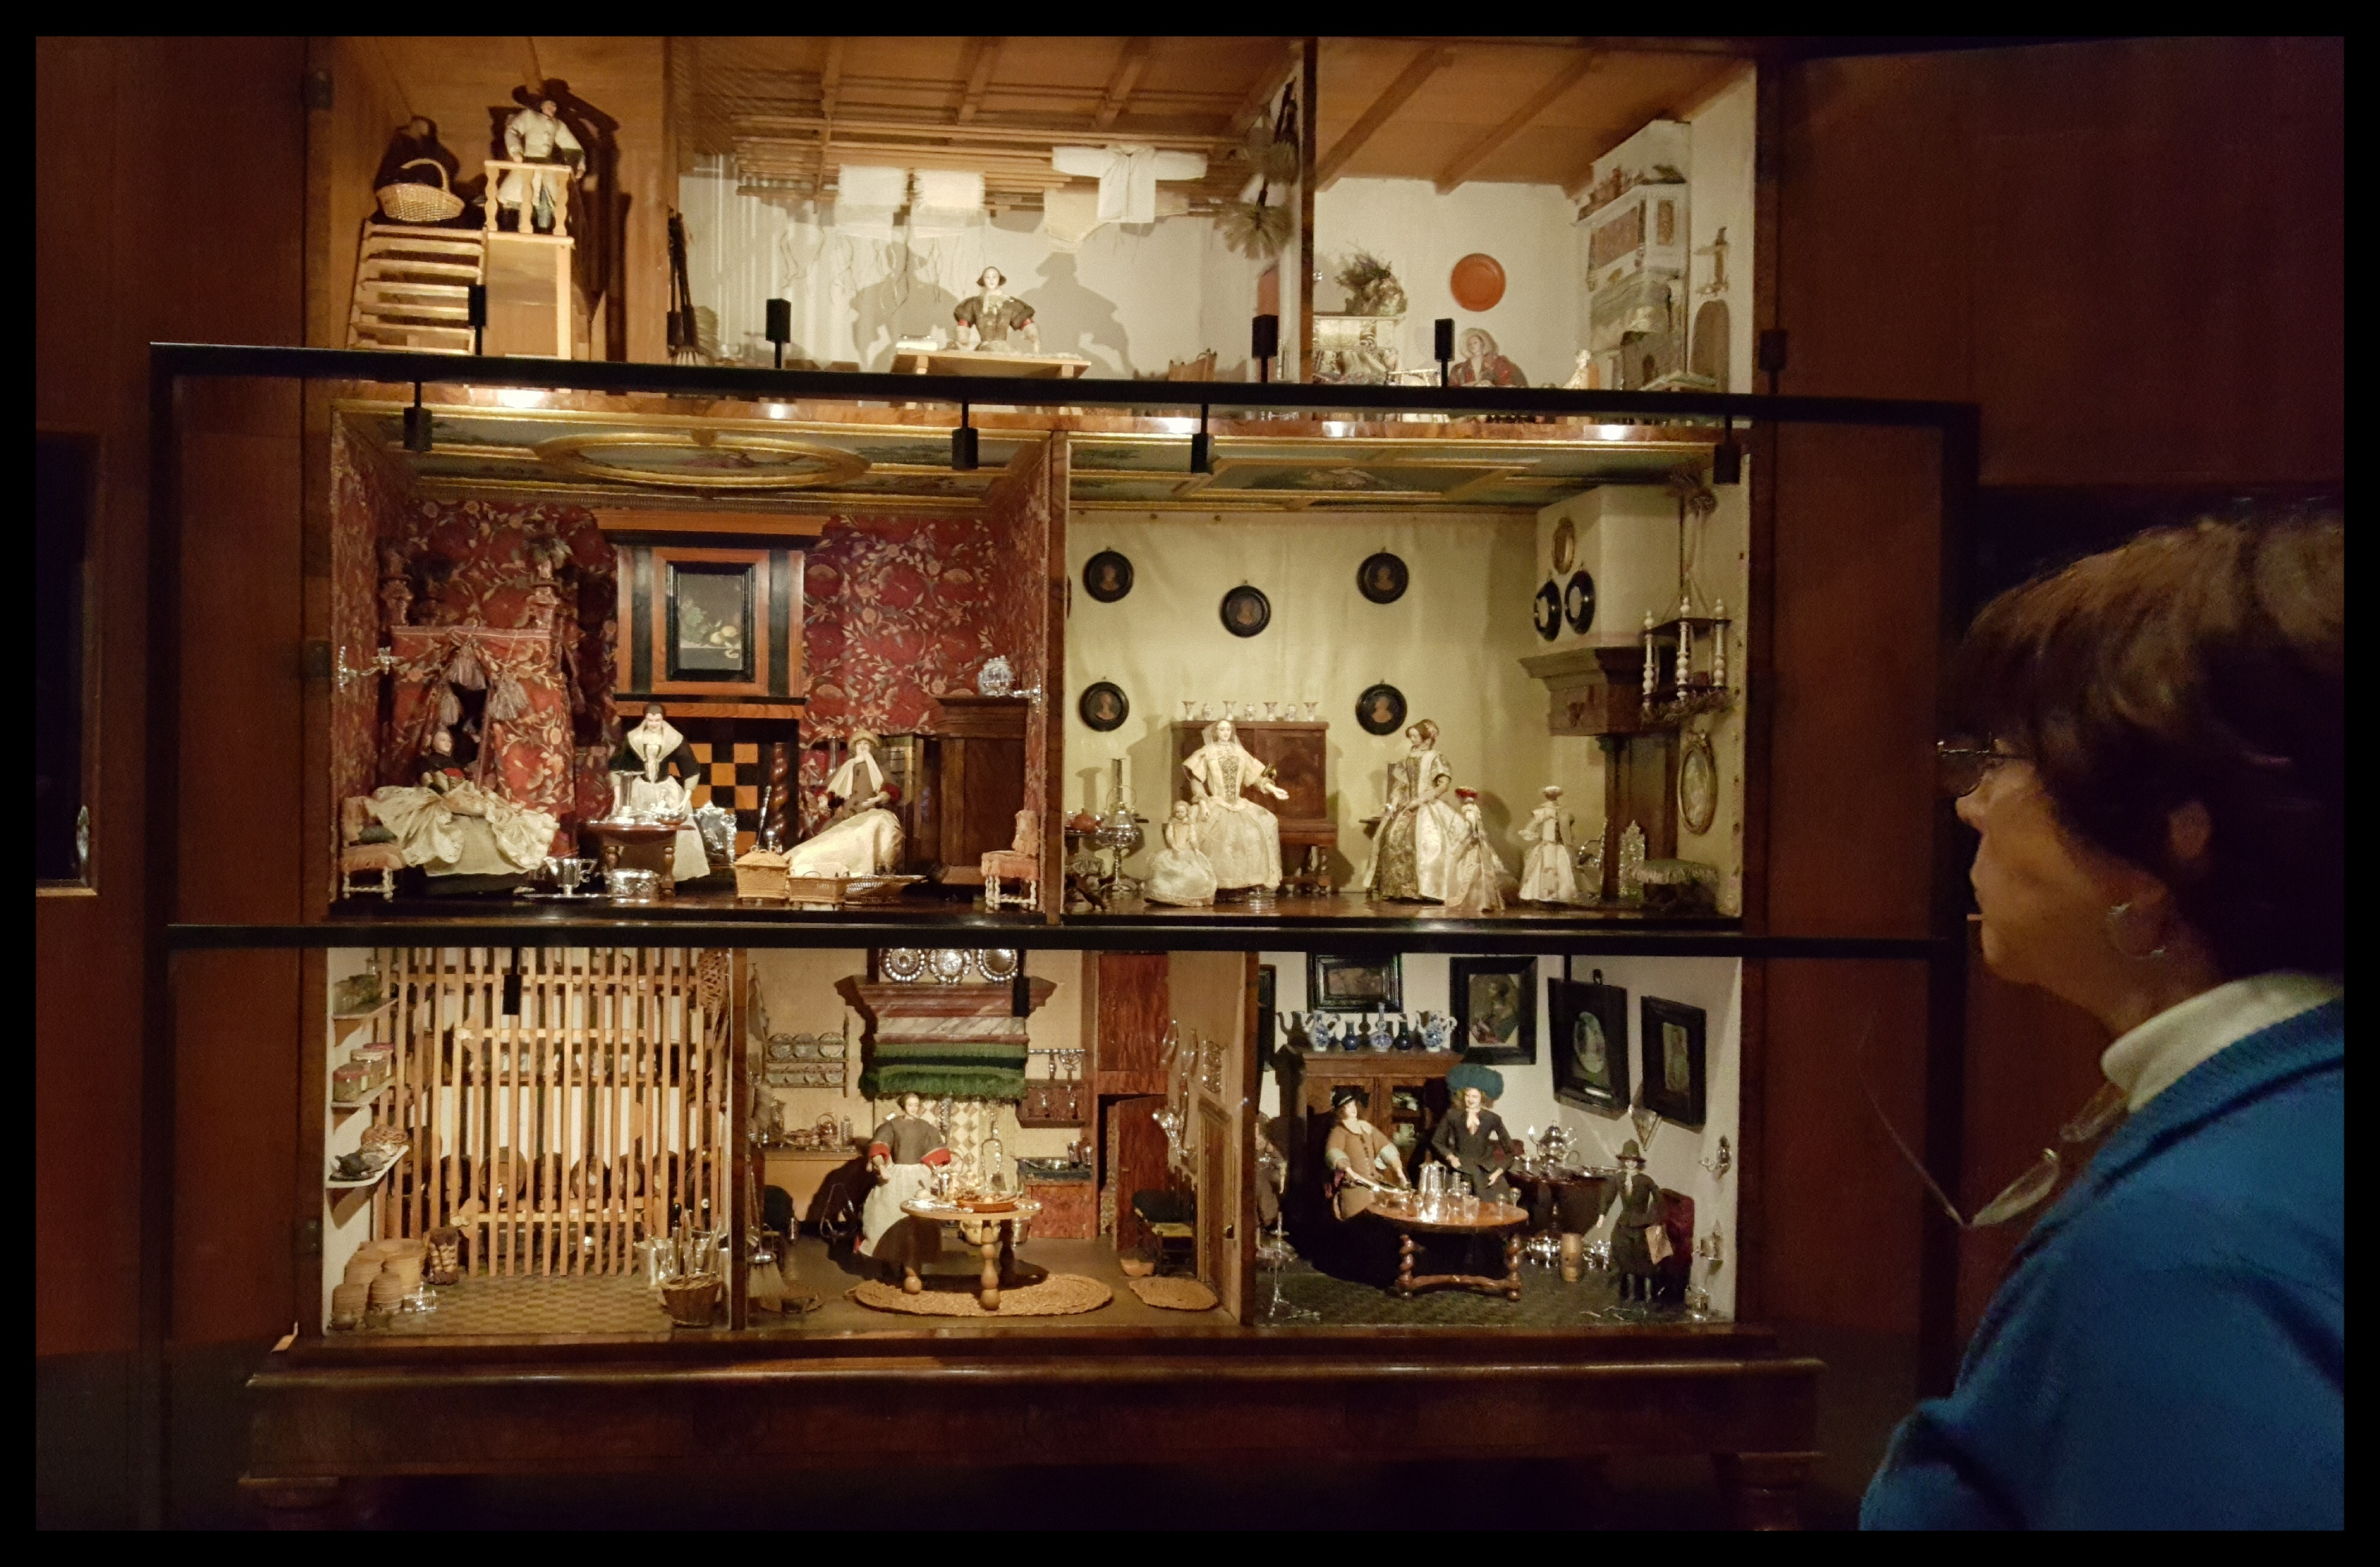 The Rijksmuseum also has some wonderful doll houses.